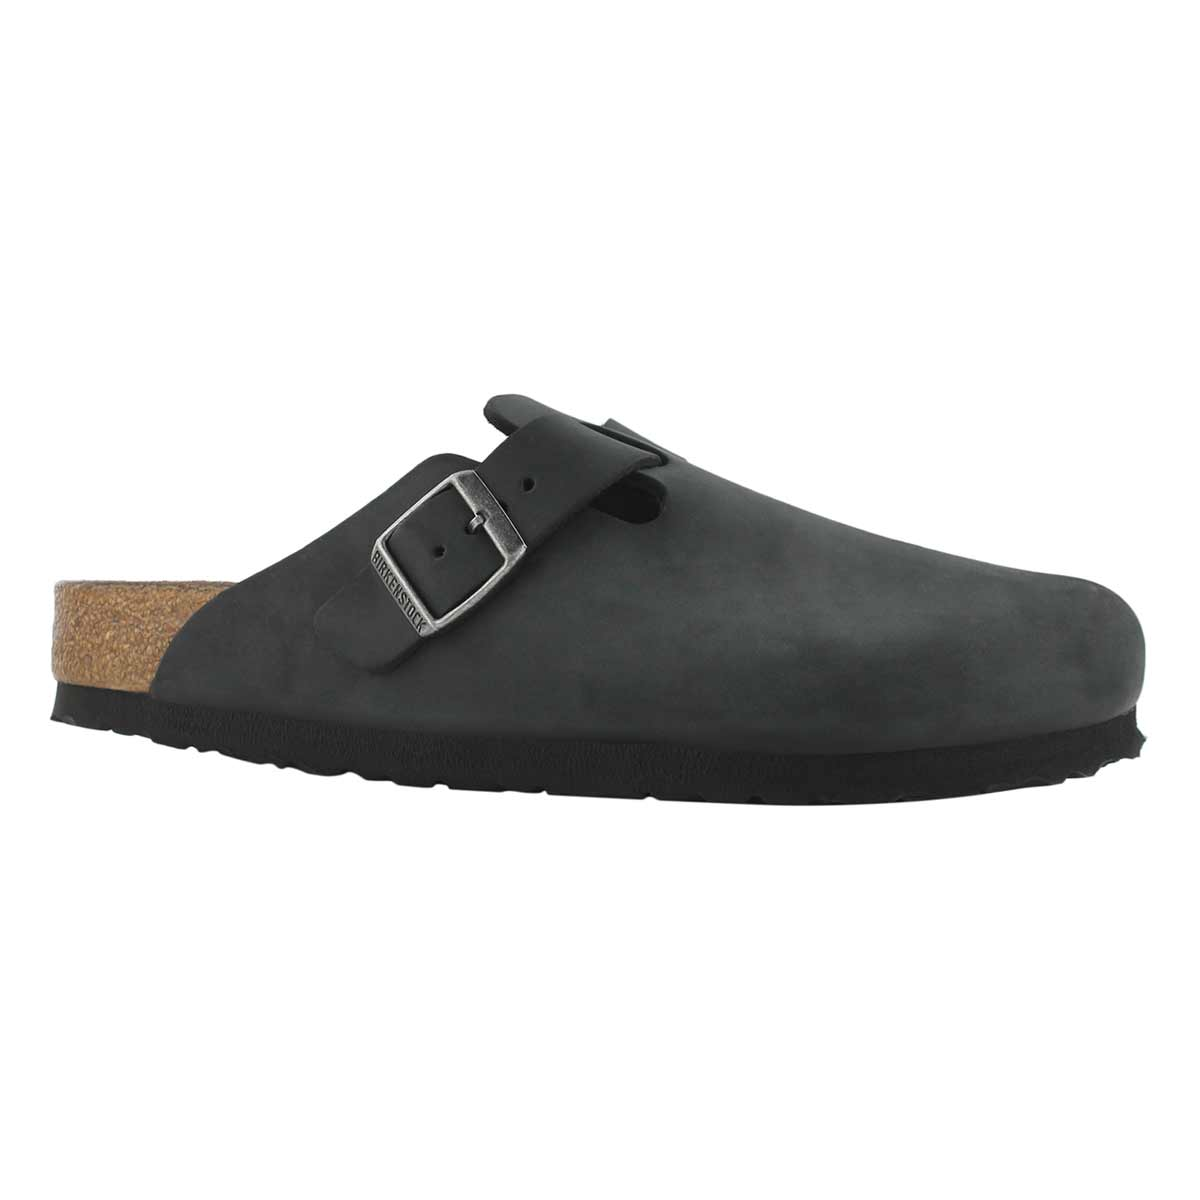 Women's BOSTON black oiled leather casual clog